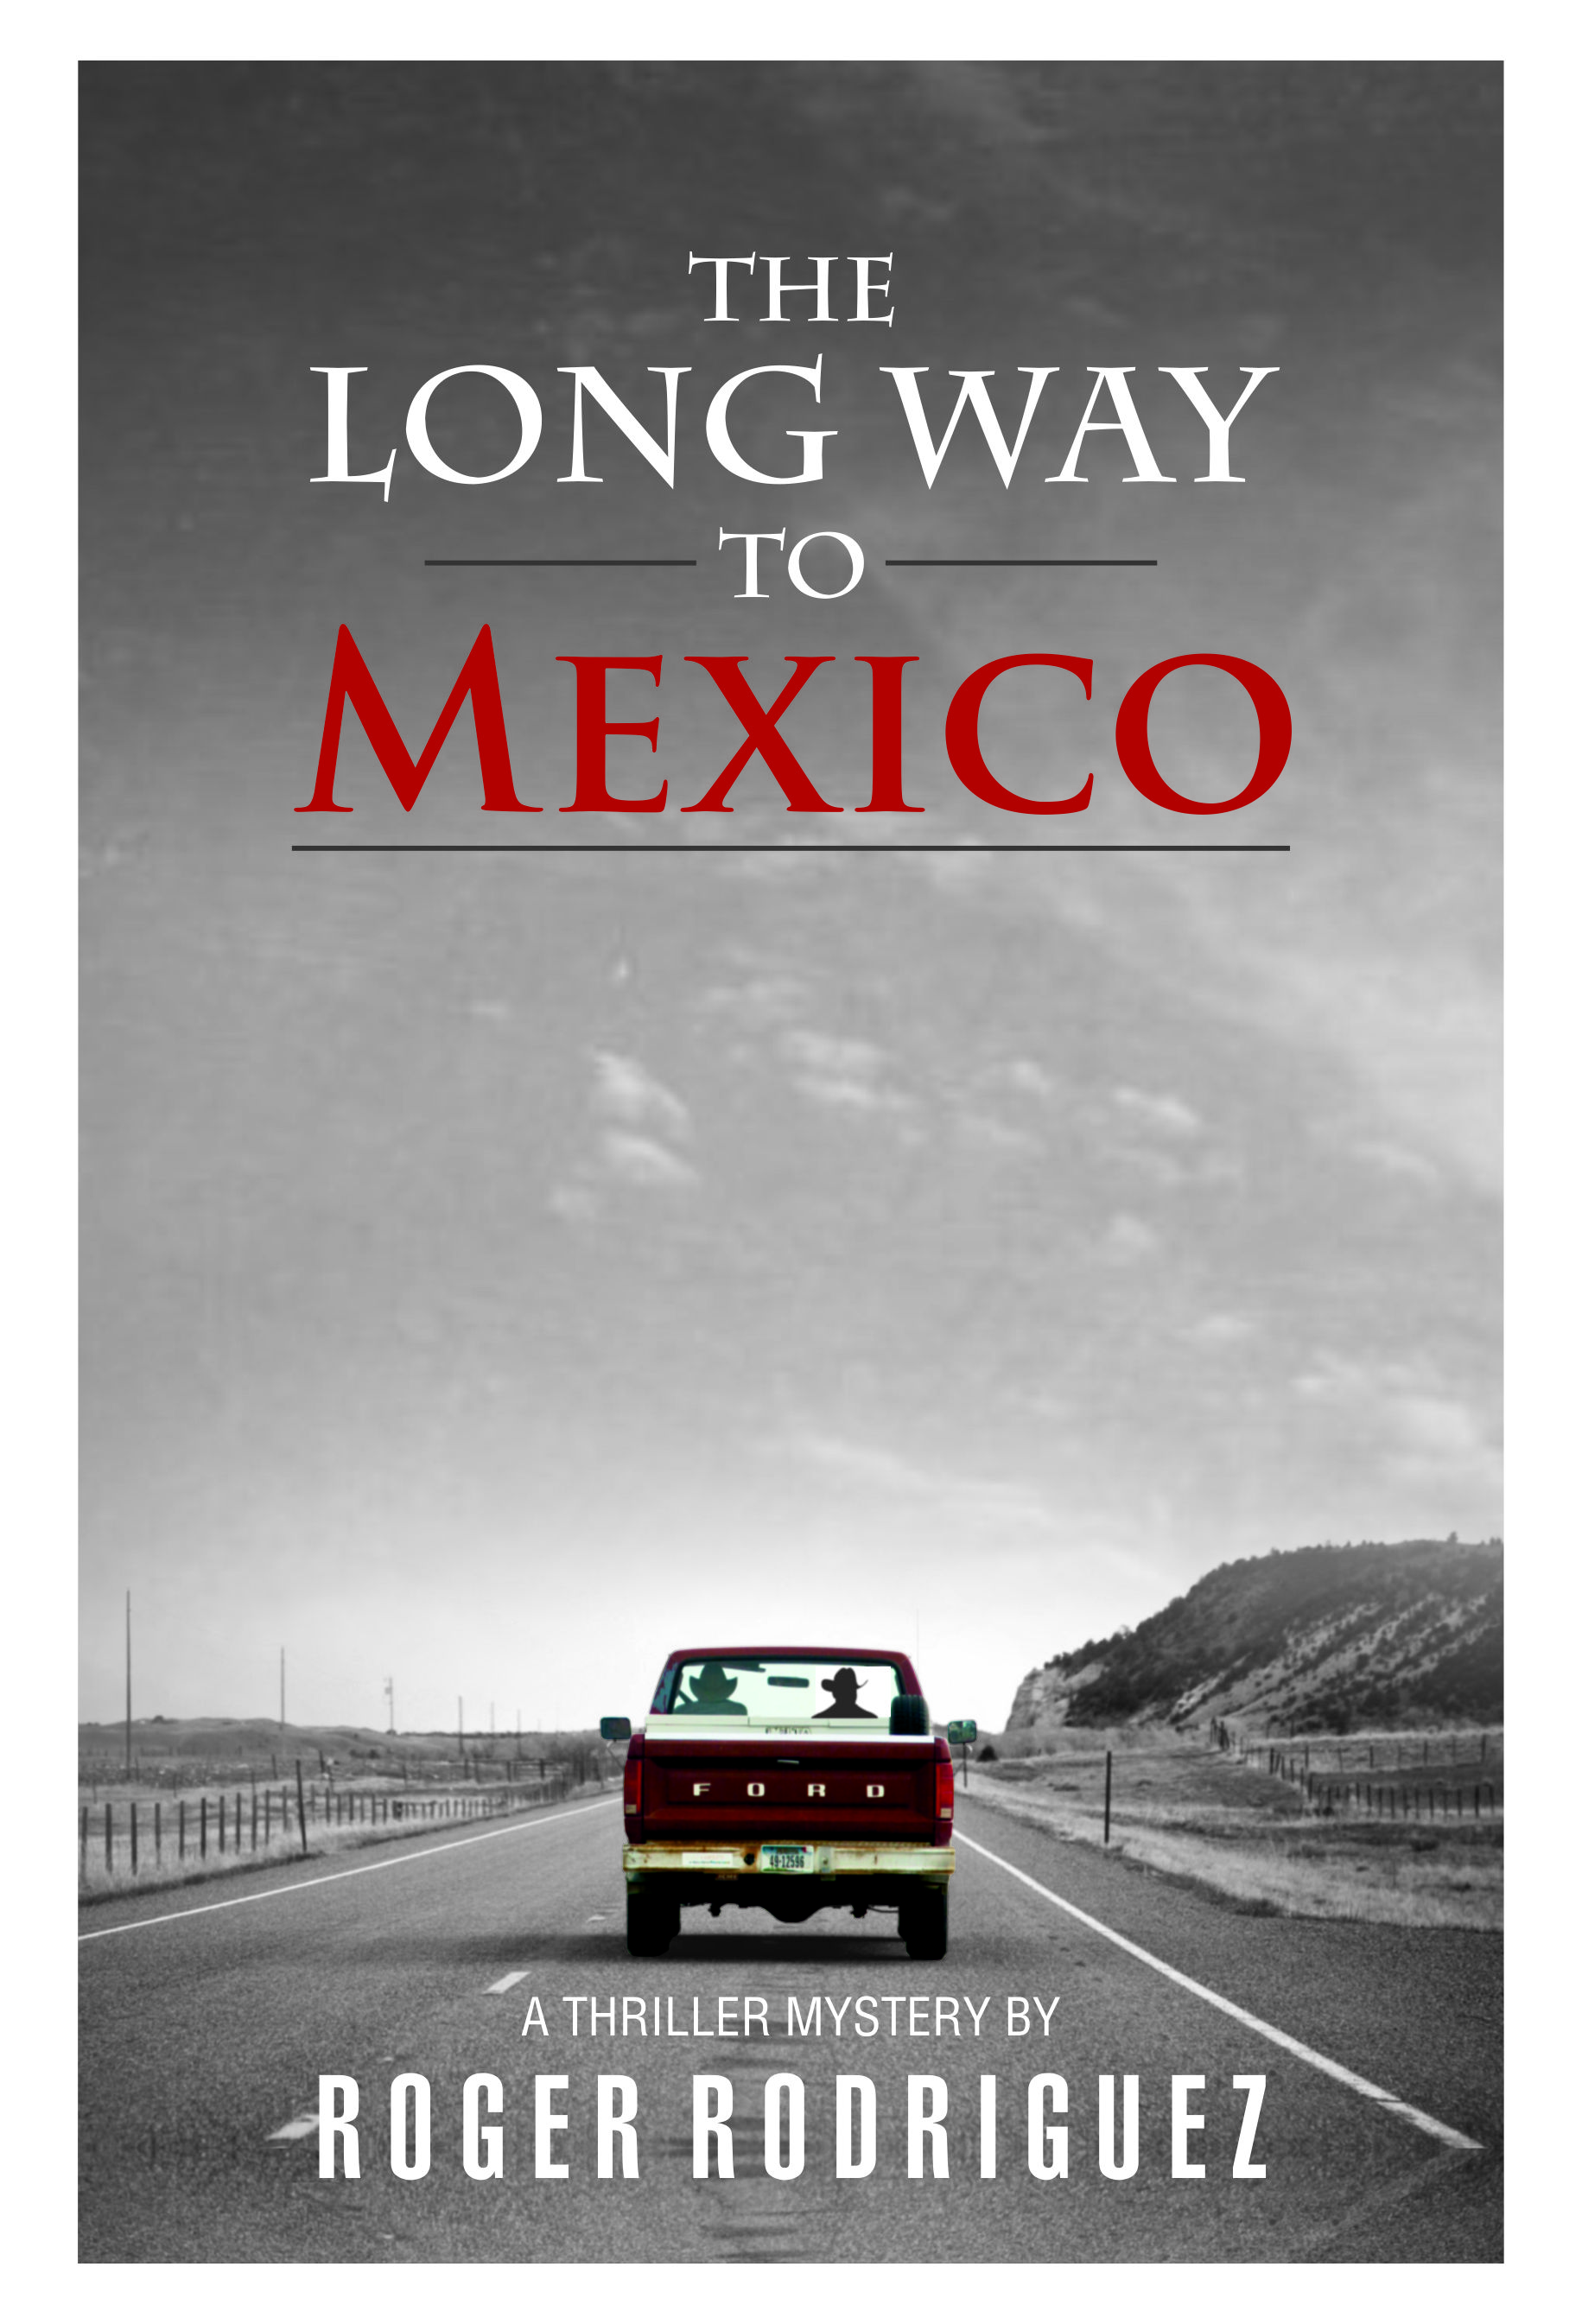 The Long Way to Mexico by Roger Rodriguez